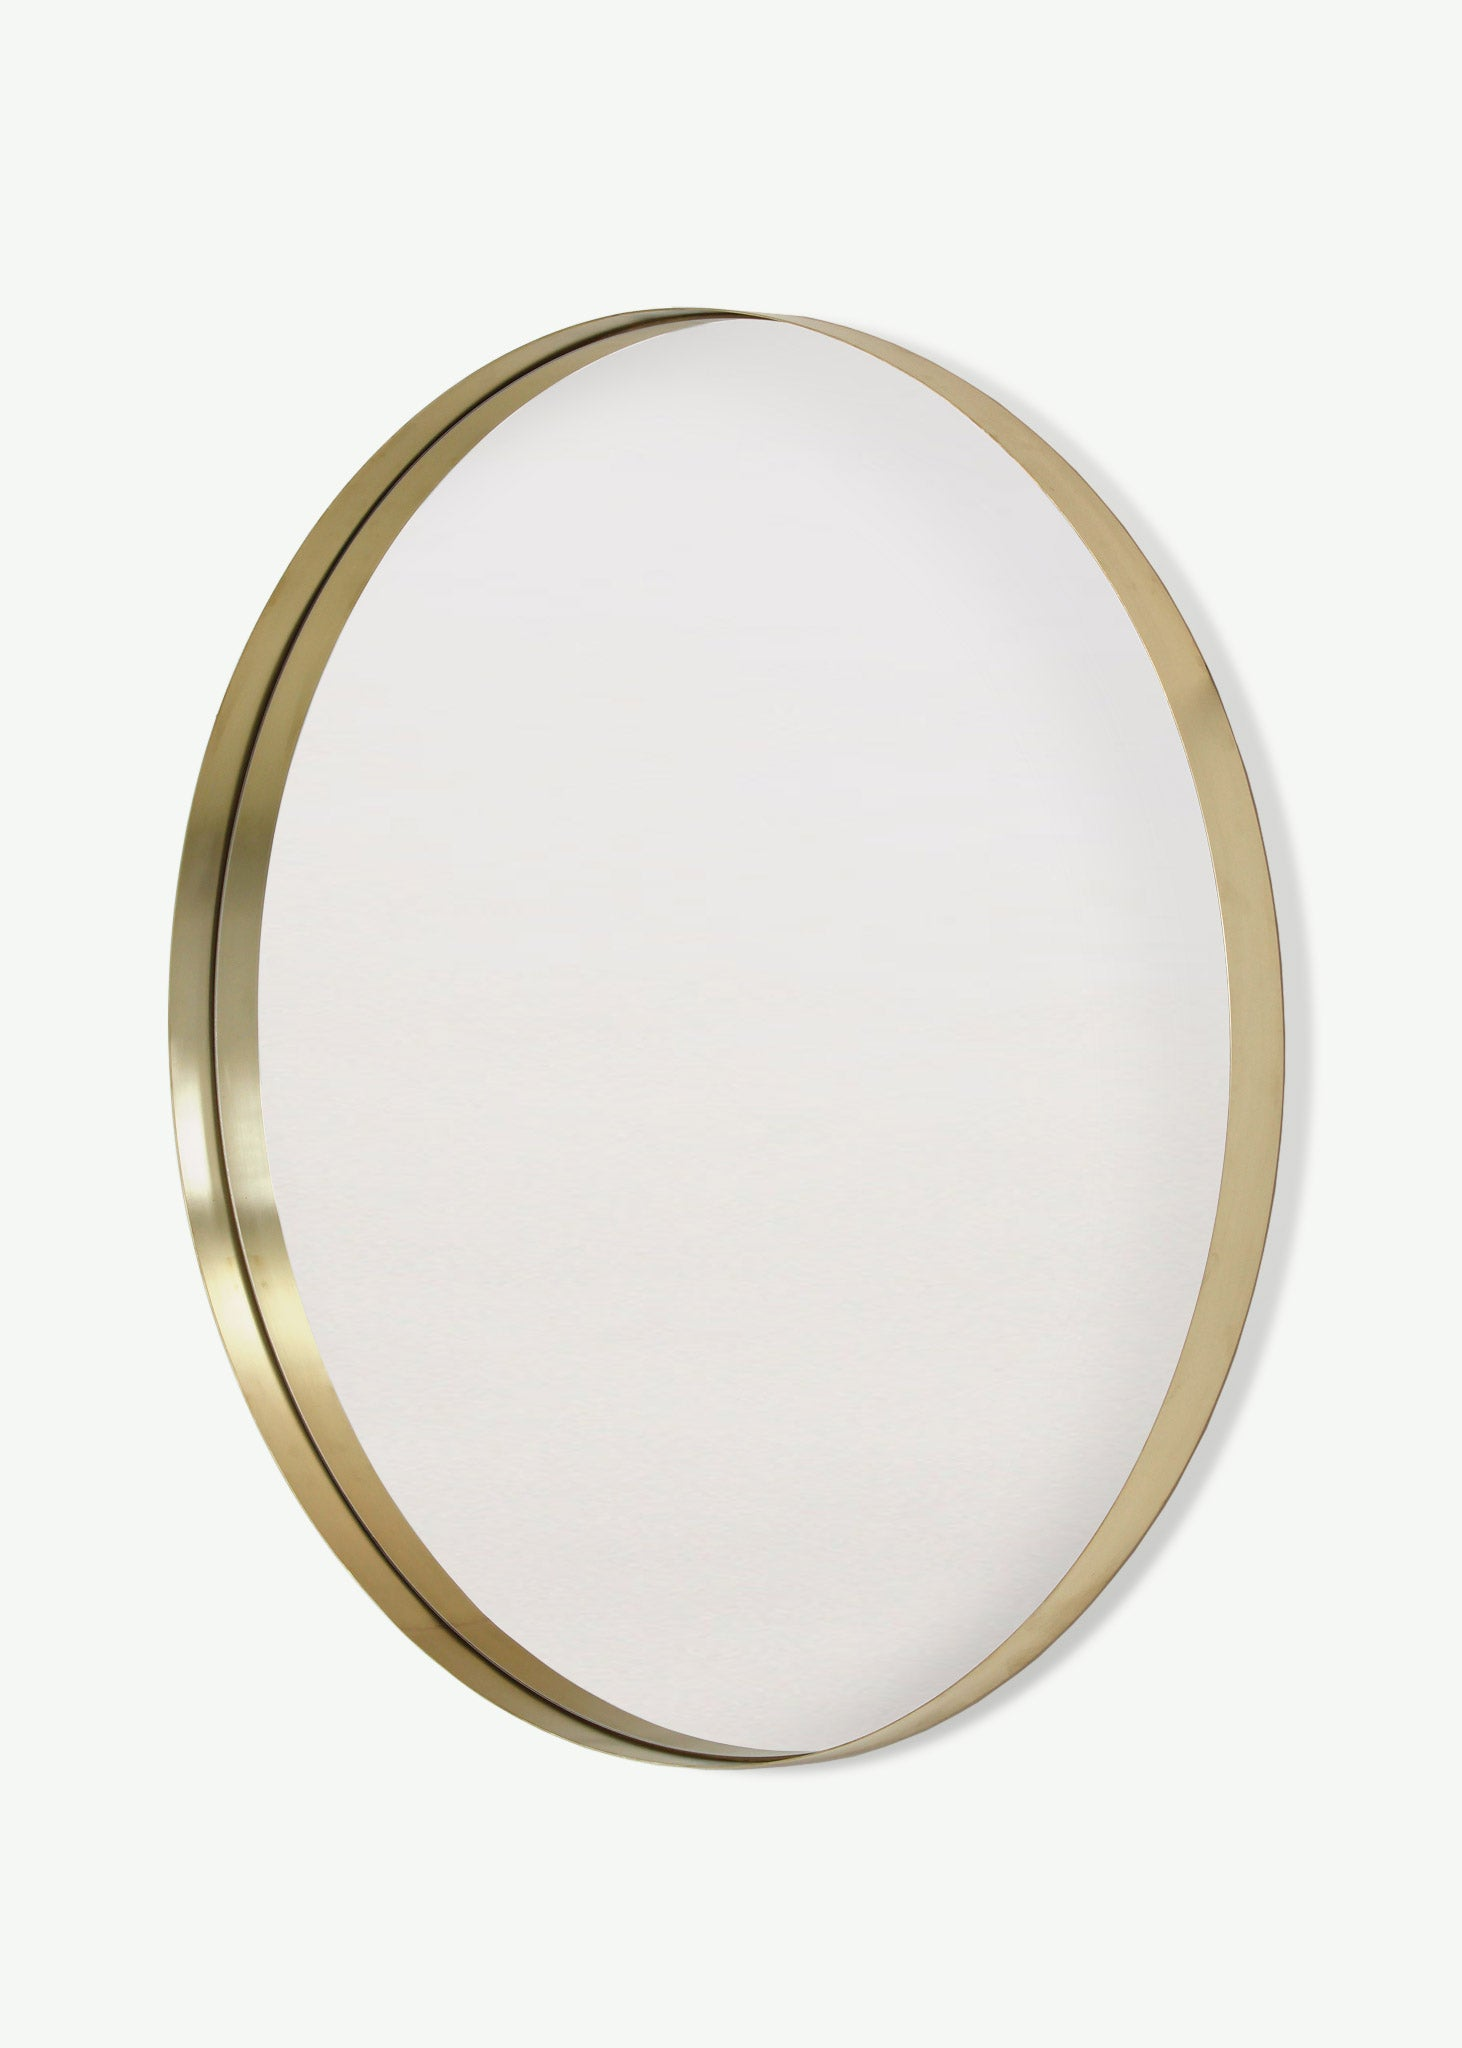 Brass Deep Frame Circular Mirrors - LED Backlit